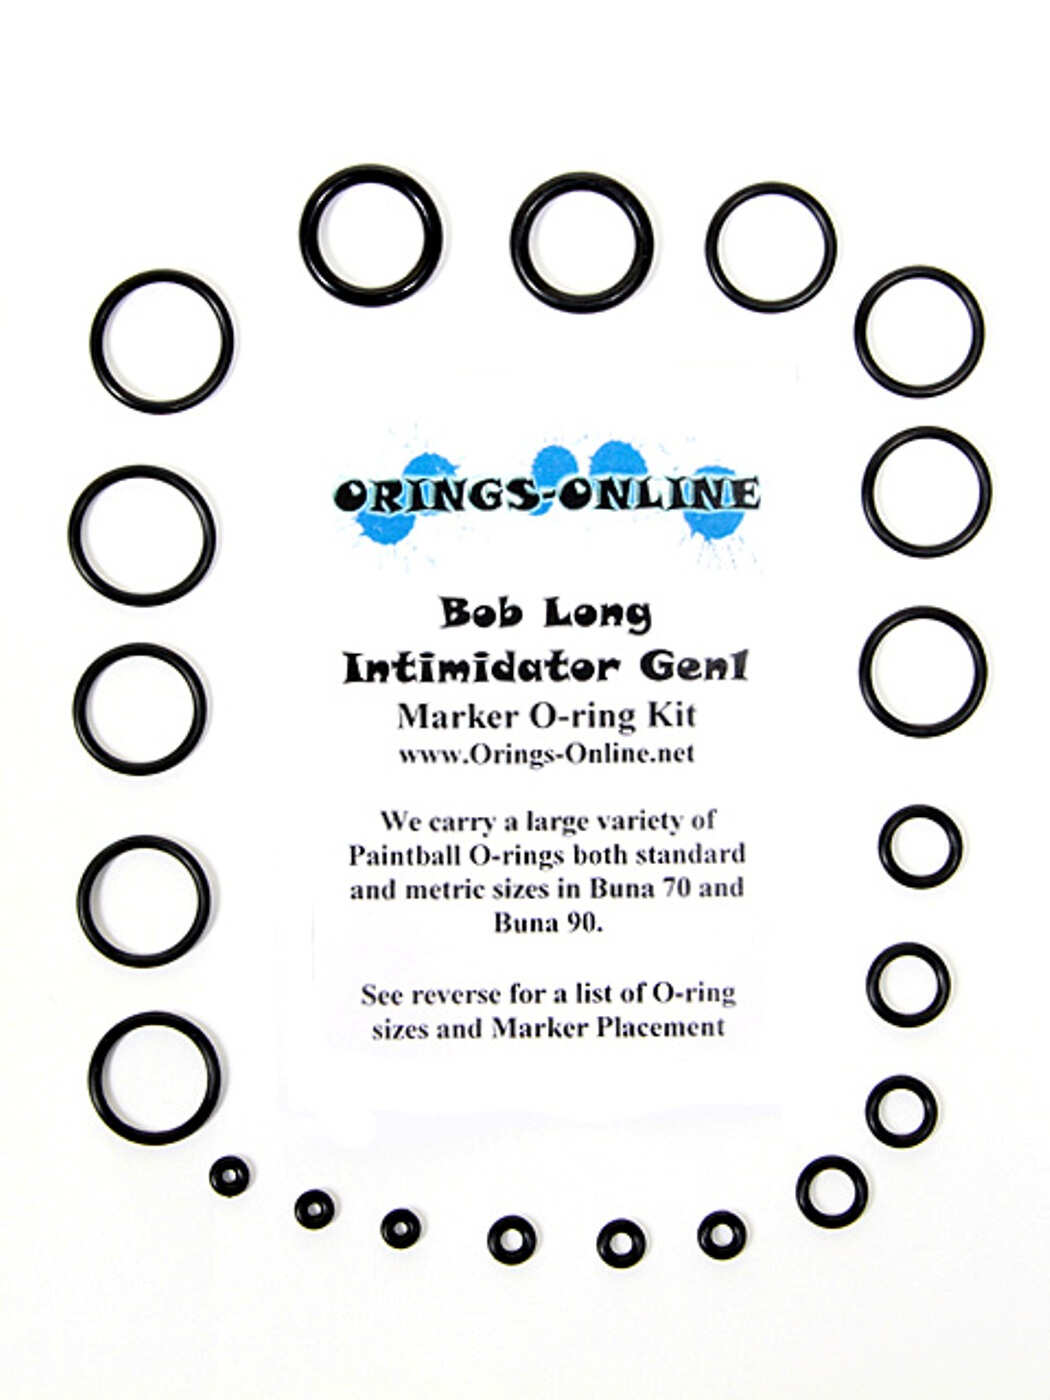 Bob Long Intimidator Gen1 Marker O-ring Kit